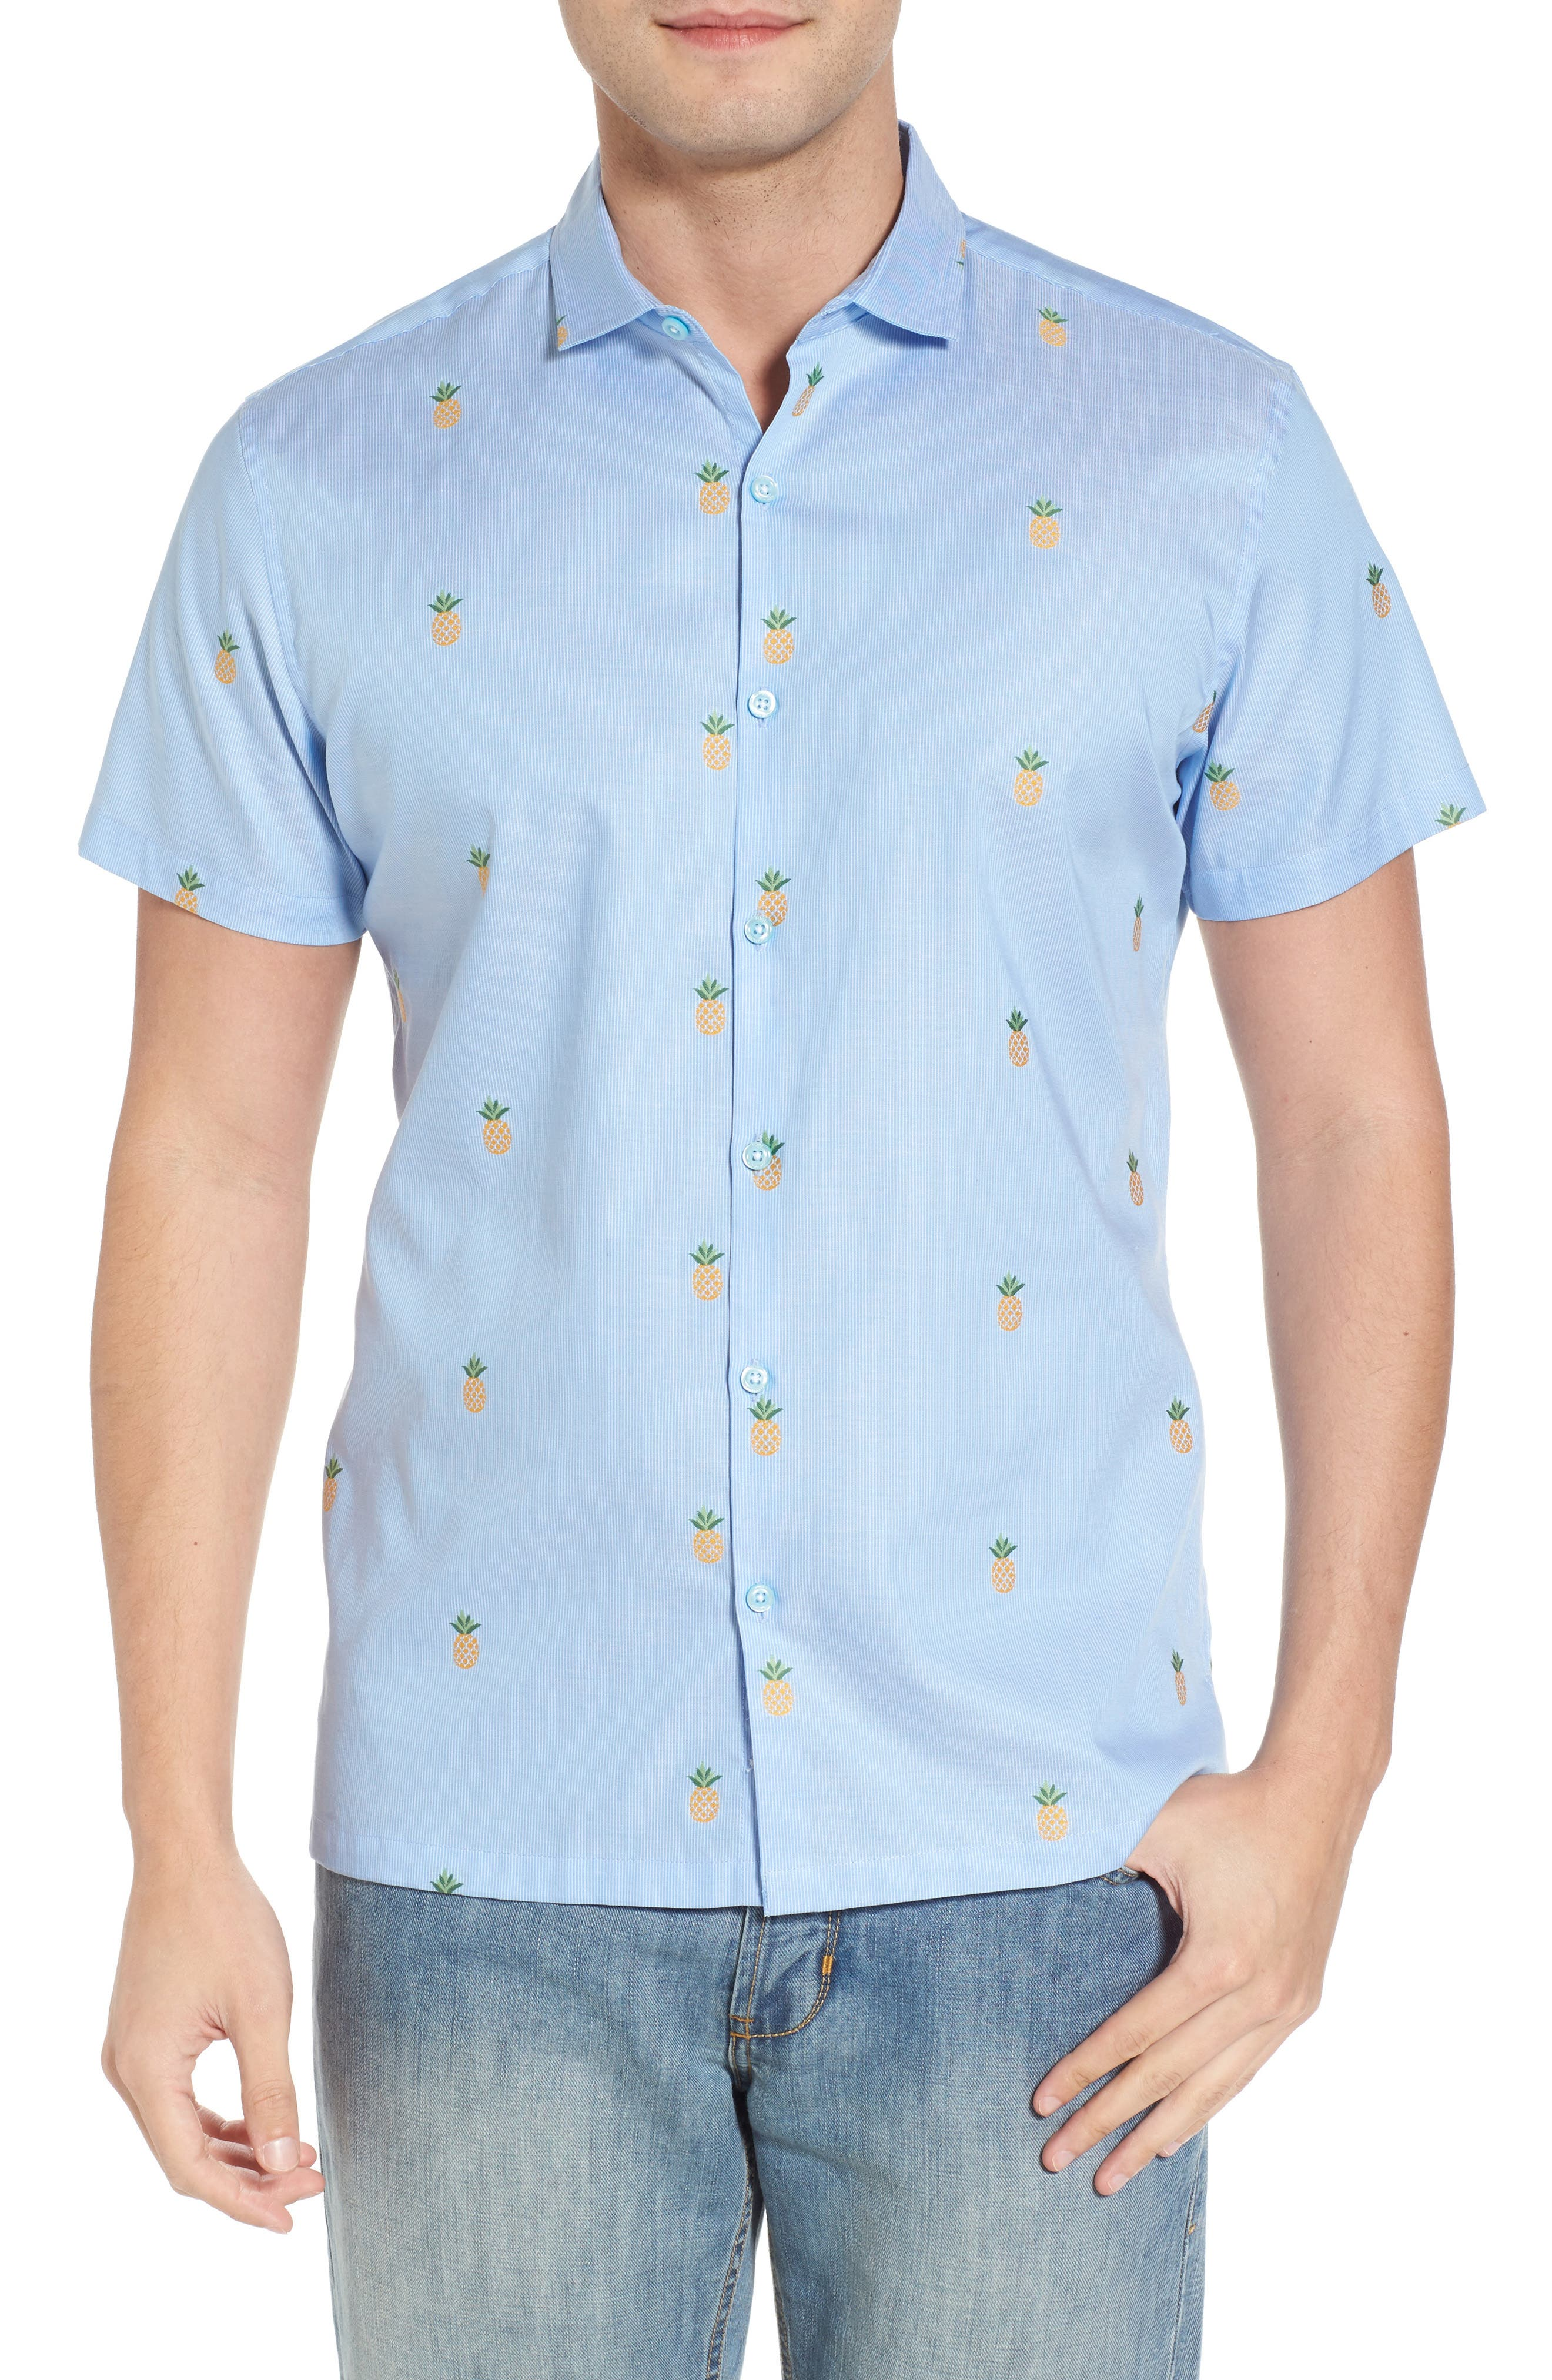 Dole 'N' Row Trim Fit Embroidered Sport Shirt,                             Main thumbnail 1, color,                             Blue